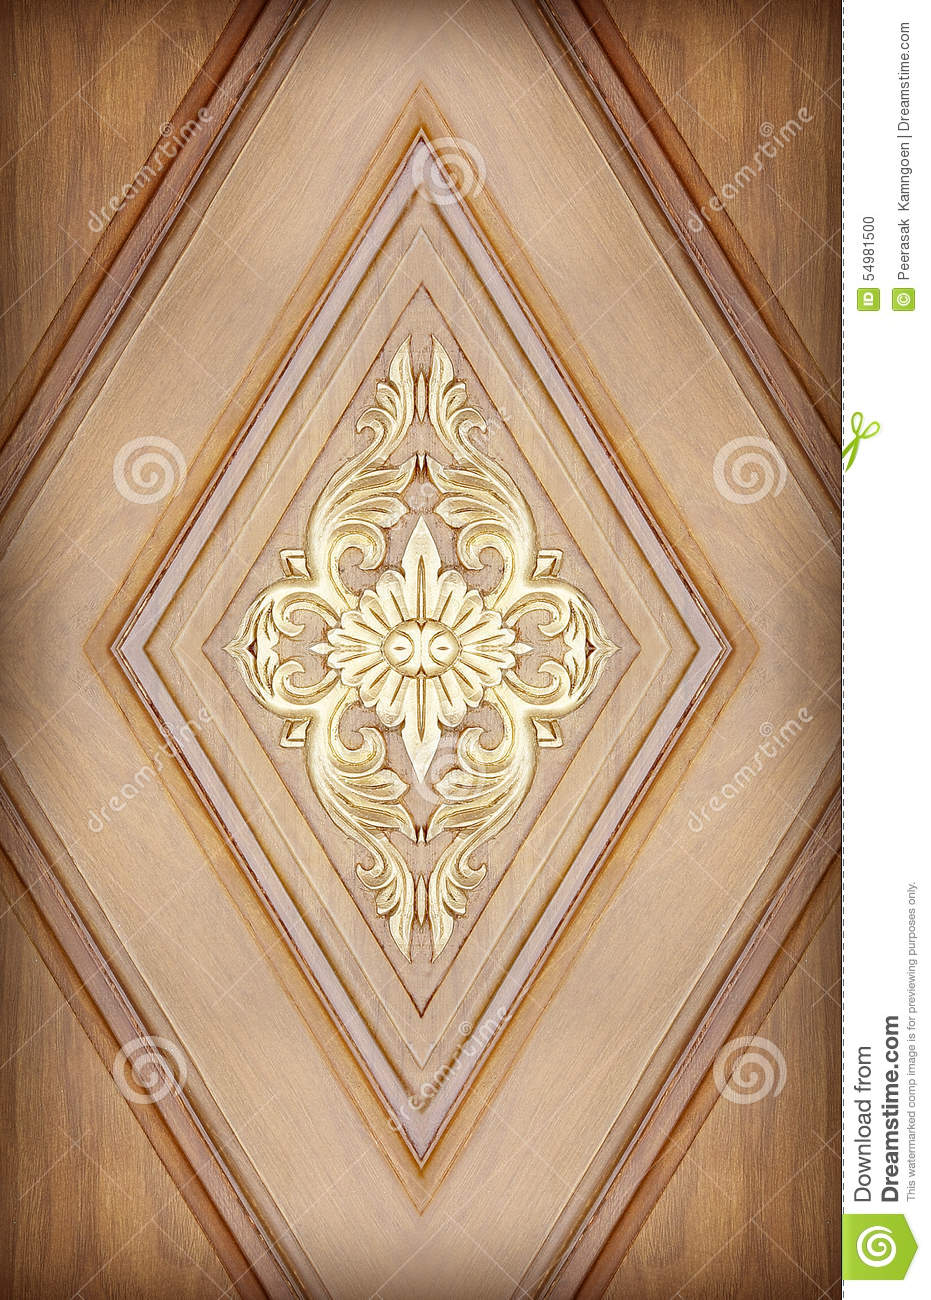 Pattern of flower carved on wood